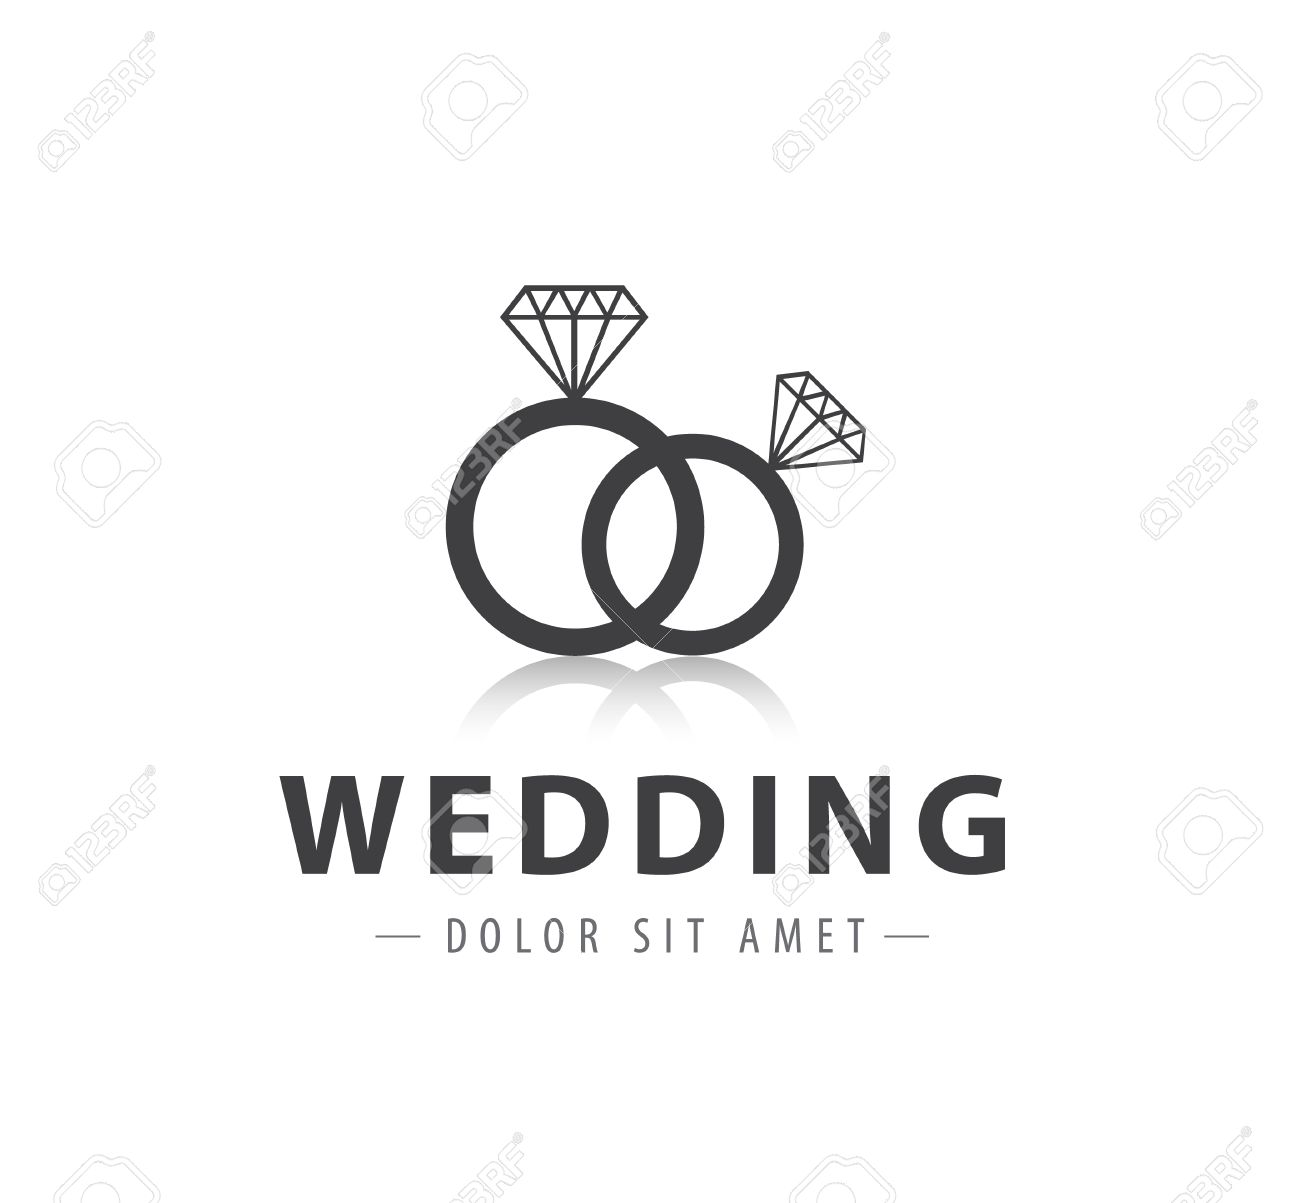 Vector Wedding Diamond Rings Logo Icon Isolated Royalty Free